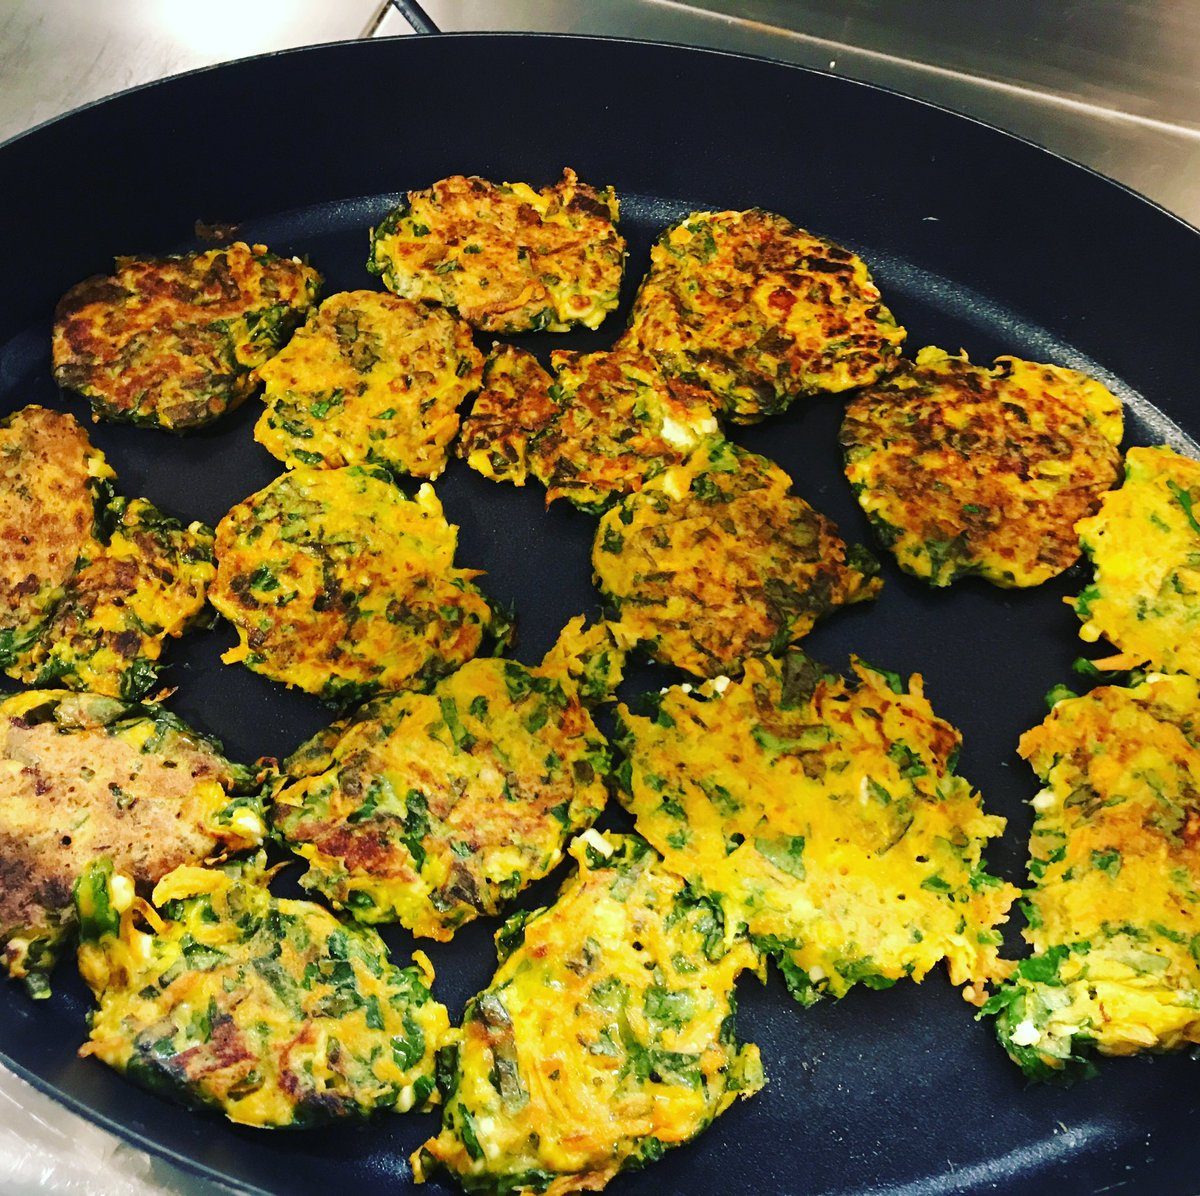 Can't get to any of our classes? Check out our recipe page on our website for easy to follow budget friendly recipes to try at home #affordablefood #affordablerecipes #cookingonabudget #socialenterprise #northlondon #cookingfromscratch  http://www.breadnbutter.org.uk/recipes/pic.twitter.com/mShzC6RKDm